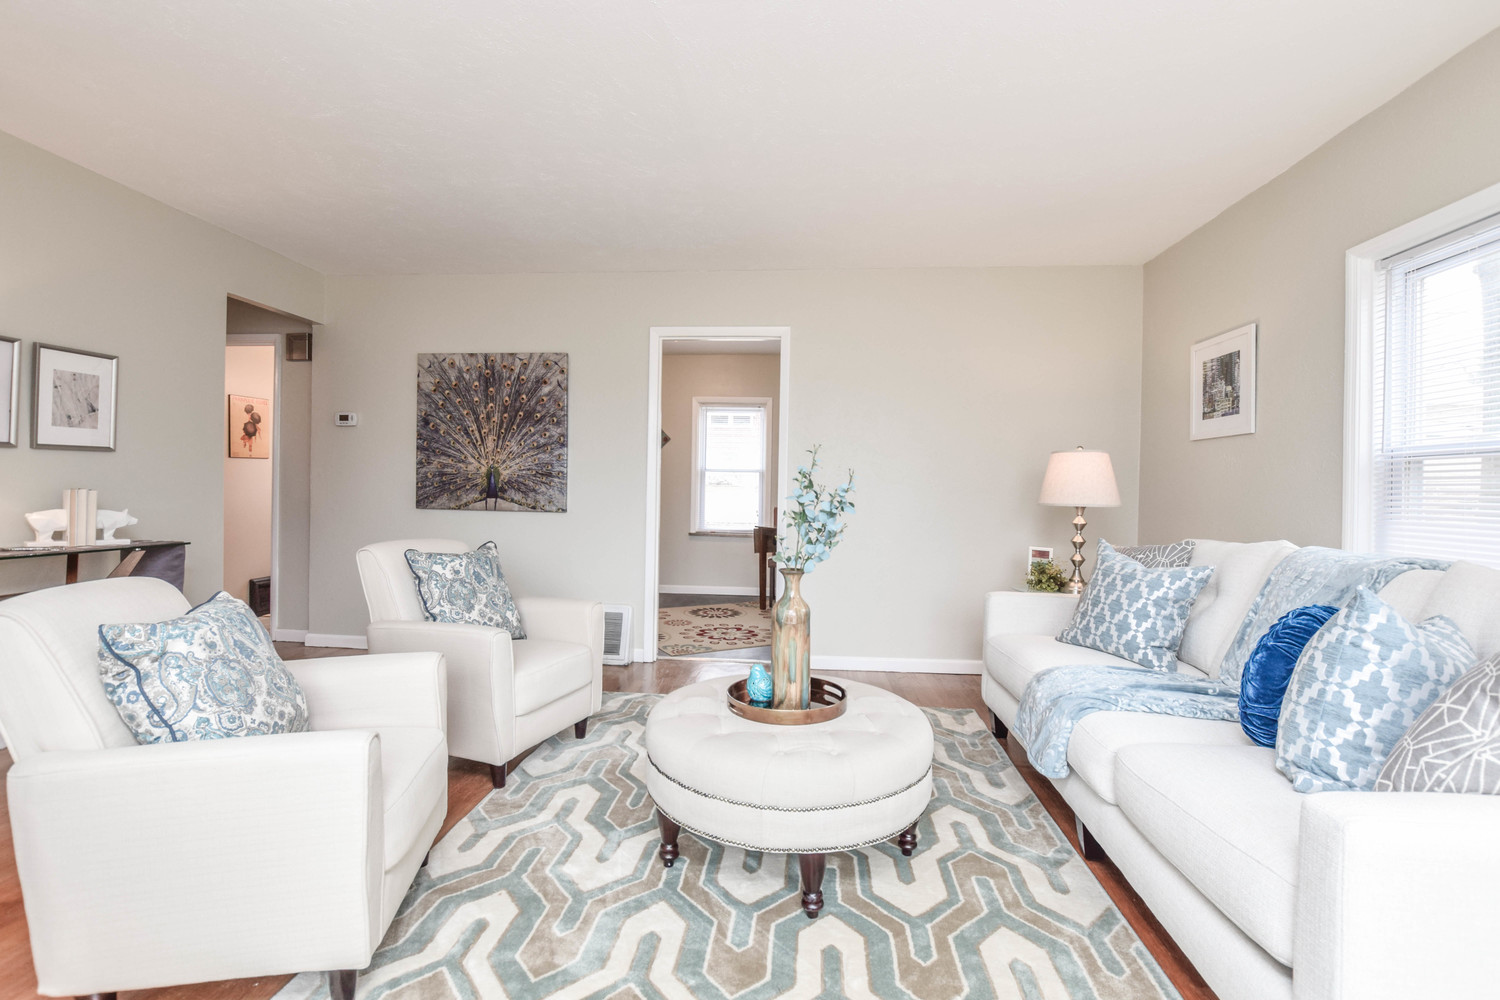 Hometenders Home Staging St Louis (21)